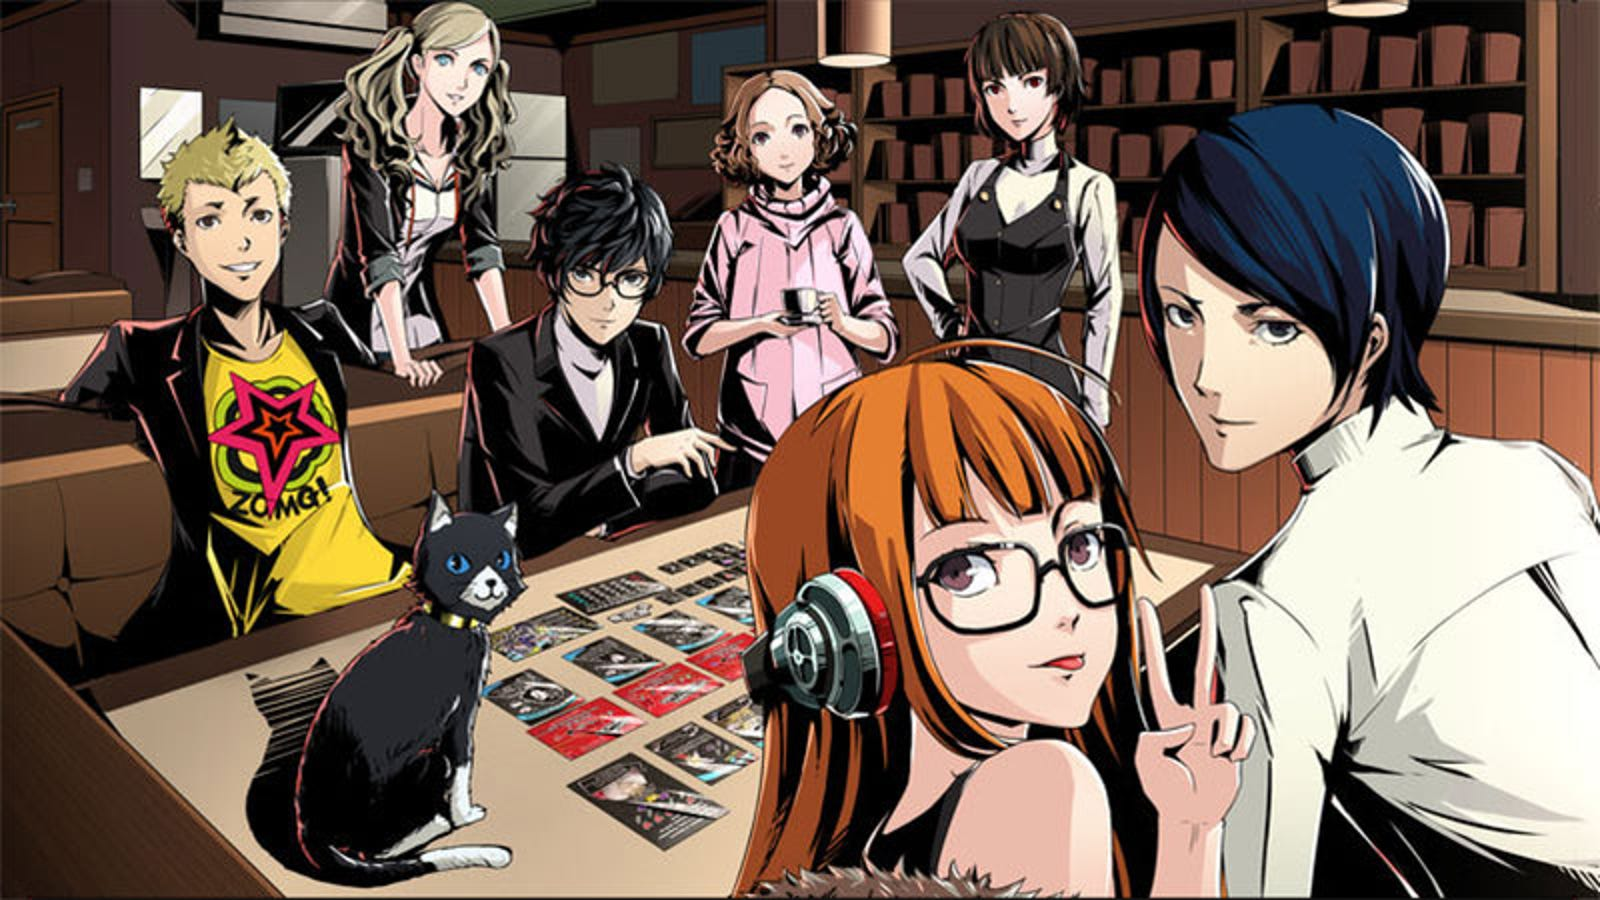 There's A (Fan-Made) Persona 5 Board Game, And It's Great